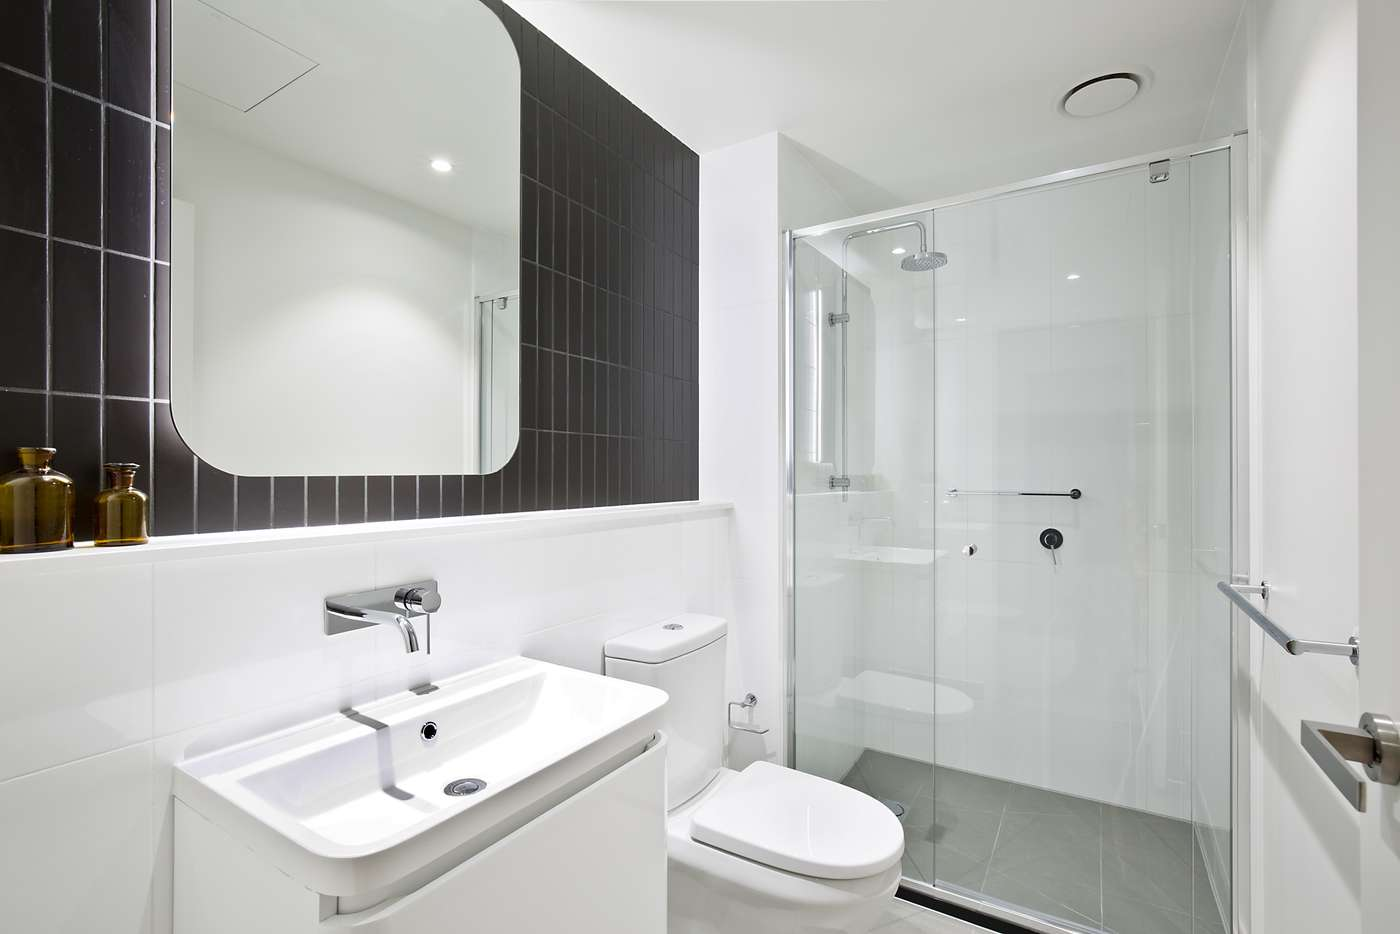 Fifth view of Homely apartment listing, 1602D/21 Robert Street, Collingwood VIC 3066